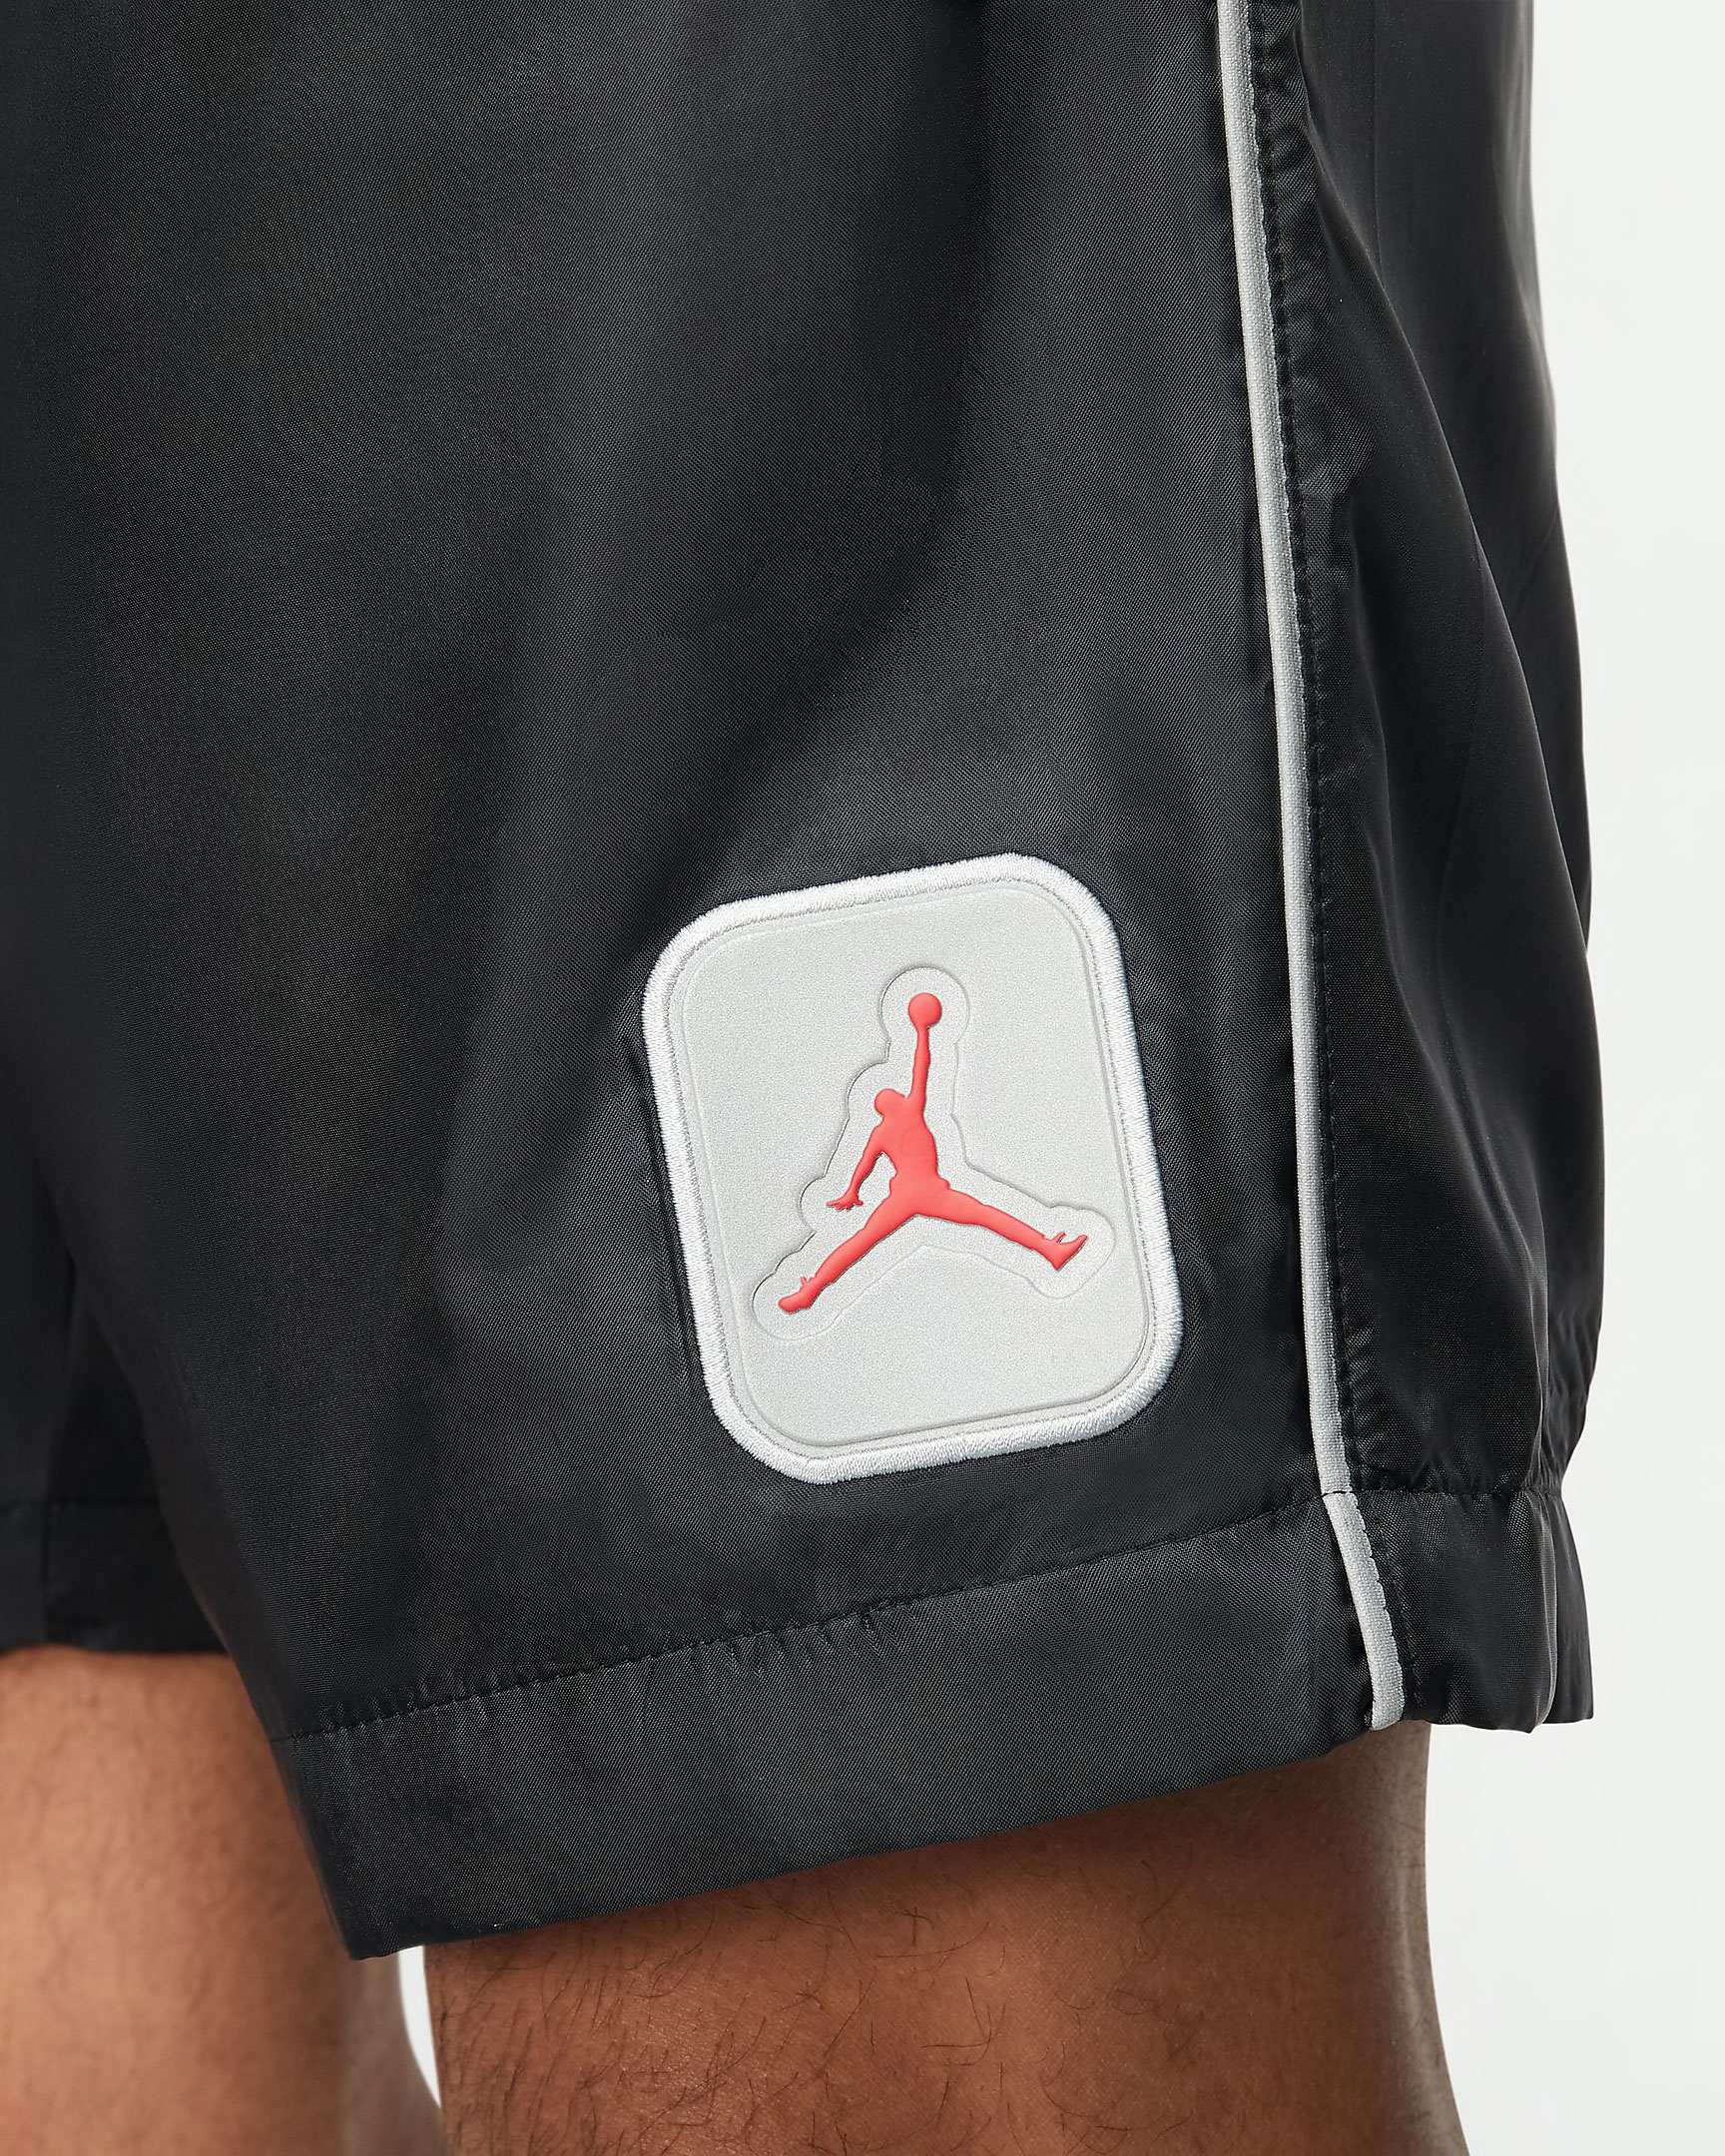 air-jordan-5-fire-red-reflective-shorts-4